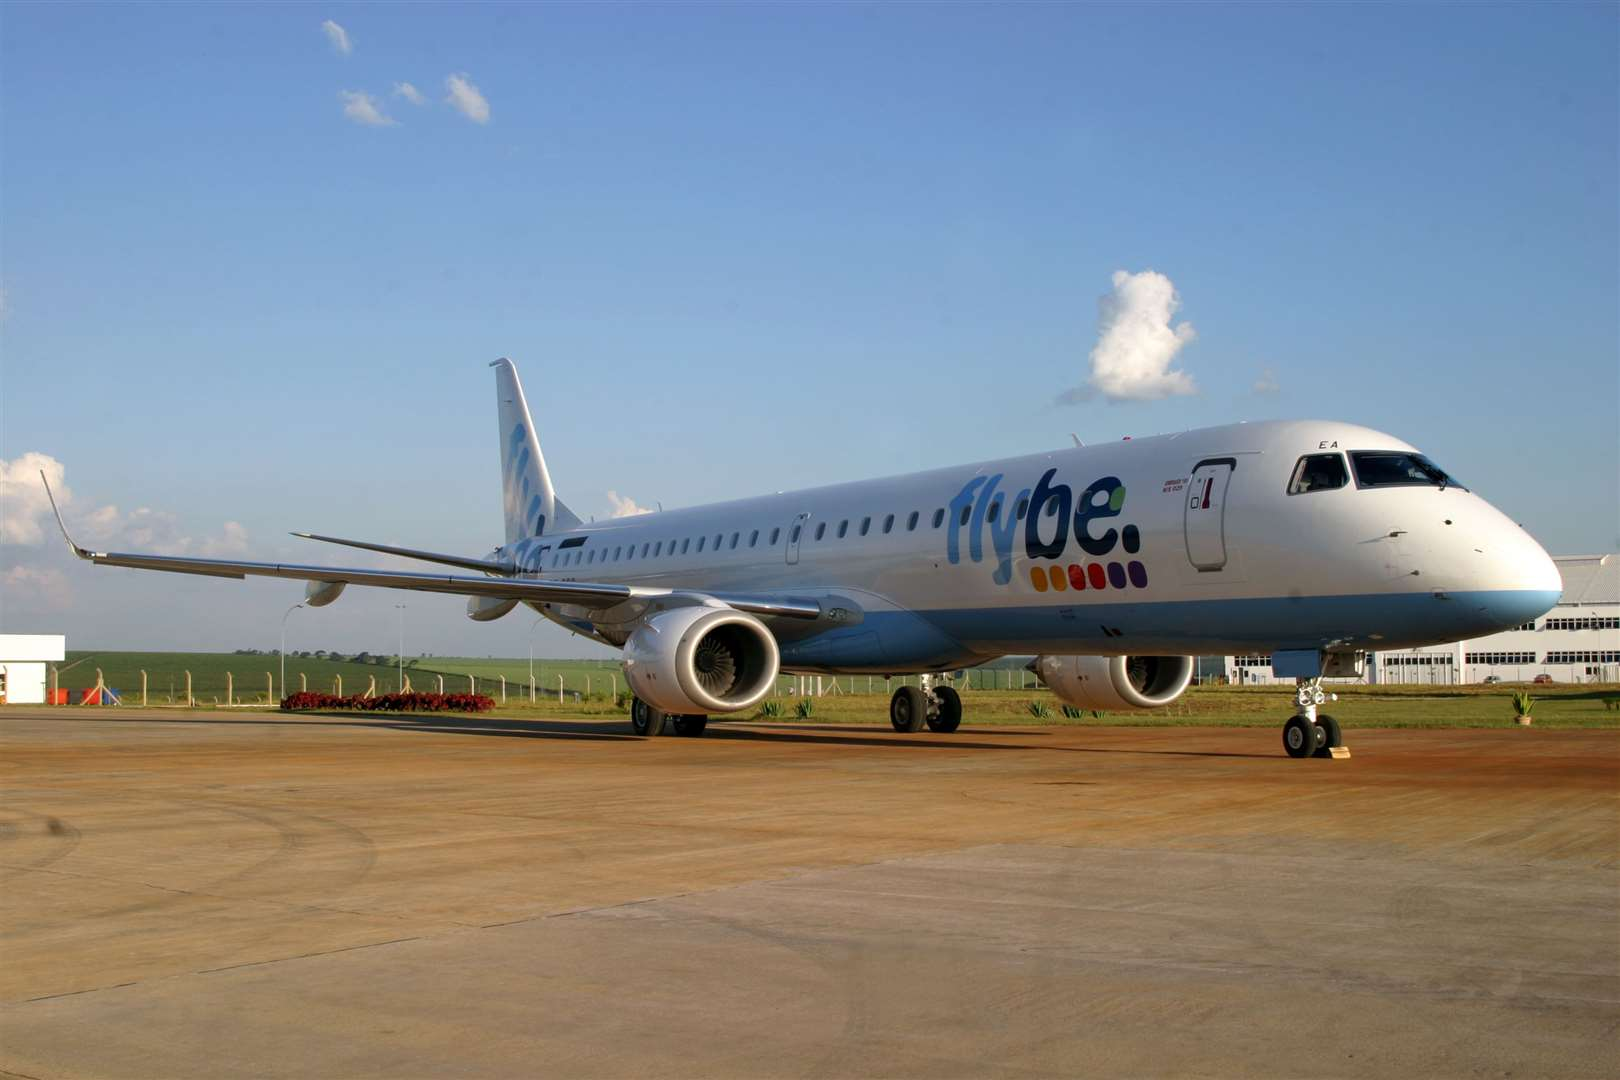 The UK Government is said to be considering measures including short-term funding to save Flybe.